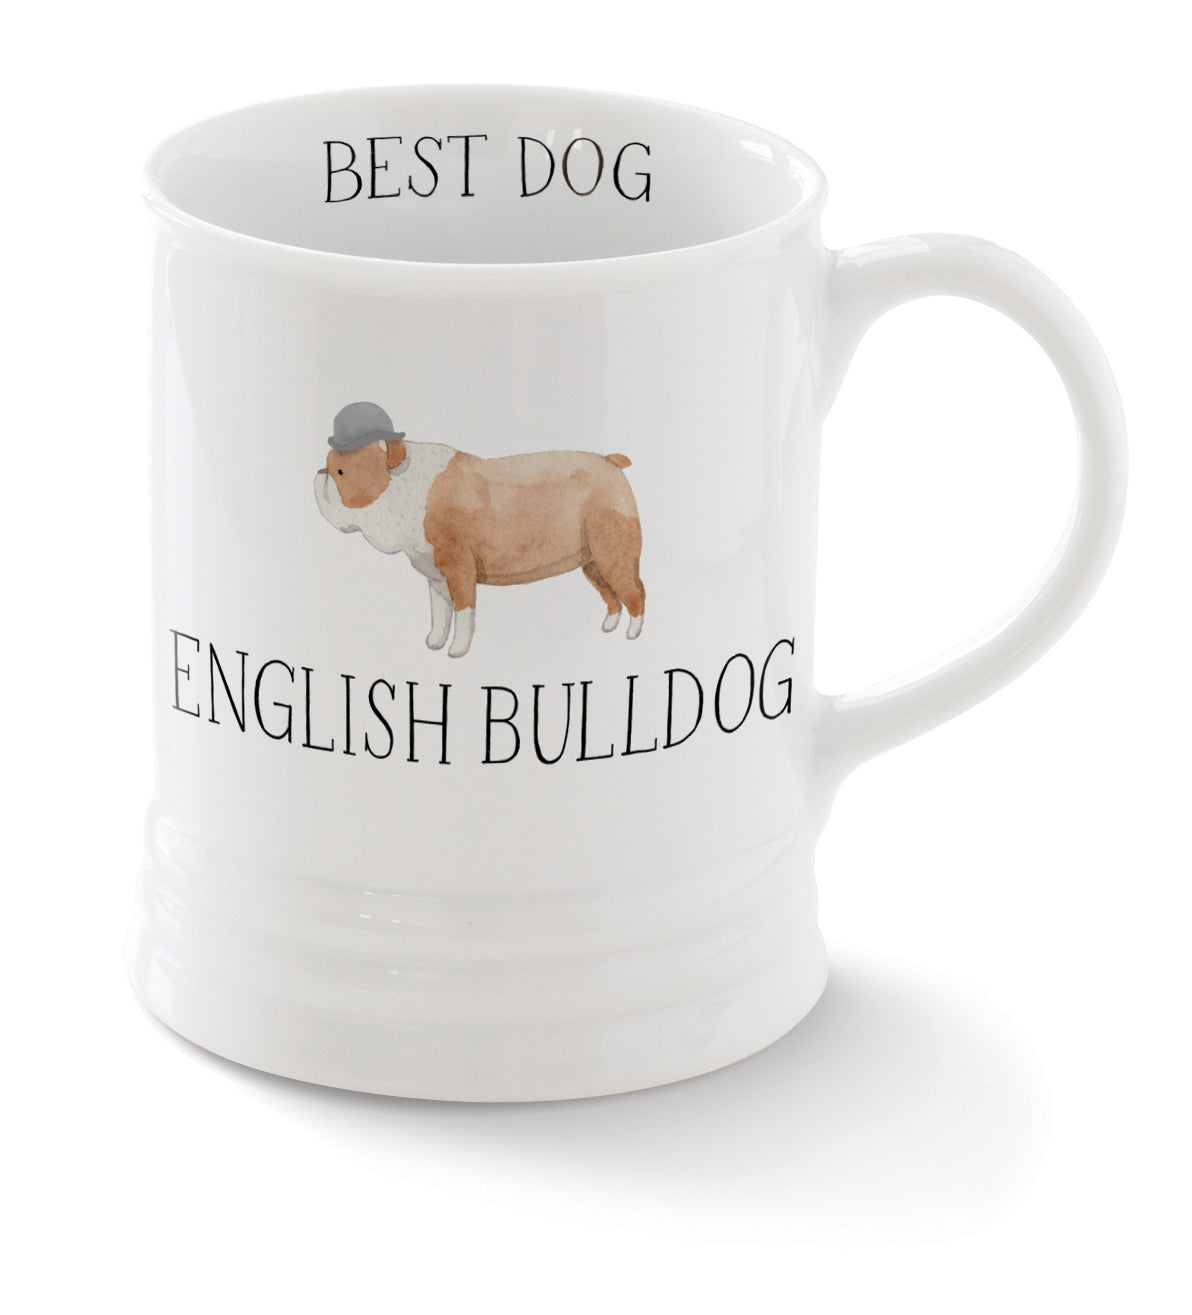 Fringe English Bulldog Coffee Mug - Magnolia Jewels & More